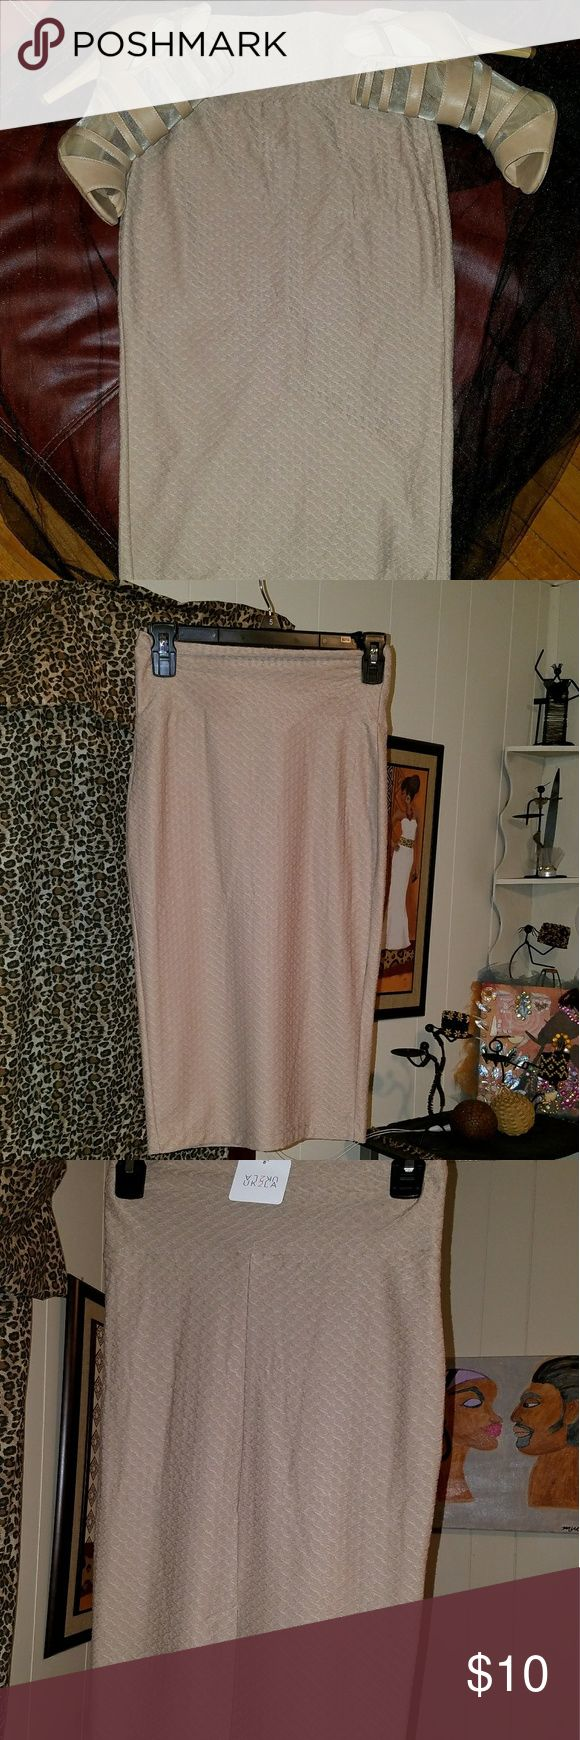 Skirt Beautiful fitted beige skirt that stops right above the knee. Going out with the Girls for a fabulous night out, this is the skirt you want to wear! UK2LA Skirts Midi